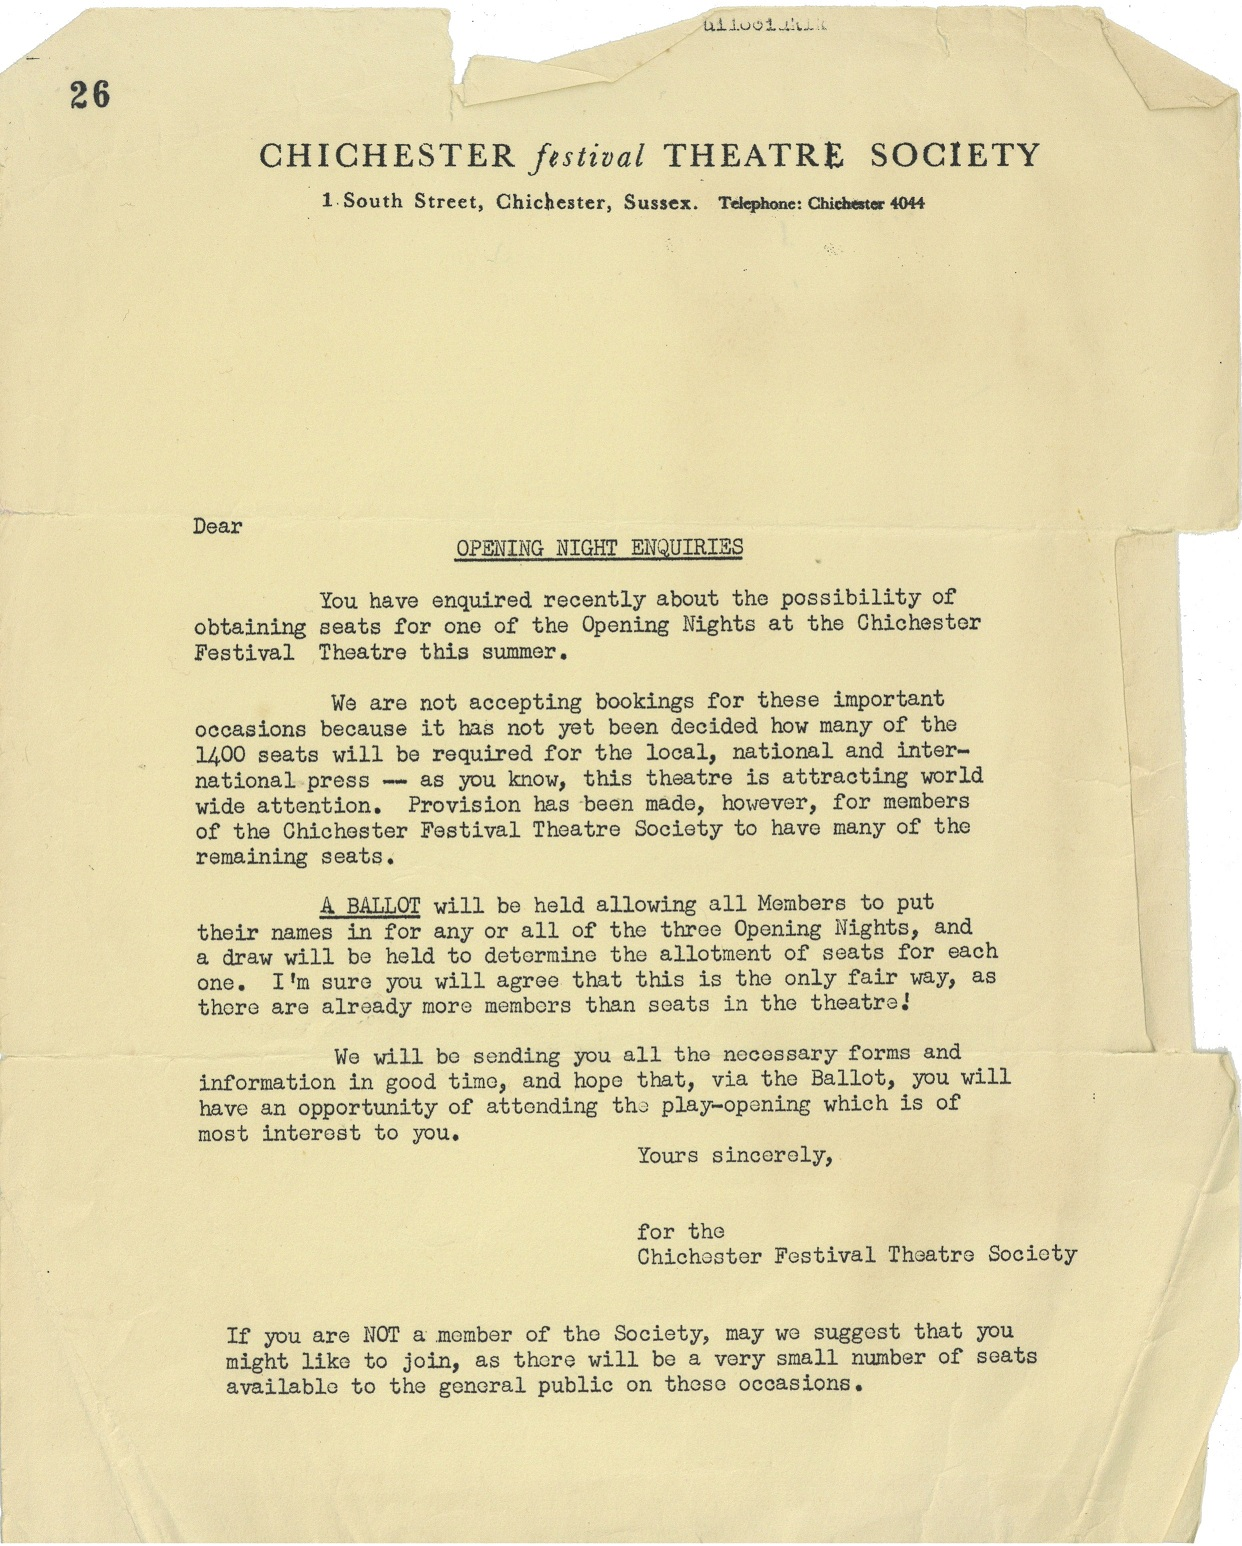 Letter about ballot for opening night seats - Theatre Society - 1962 - Gibbons Collection